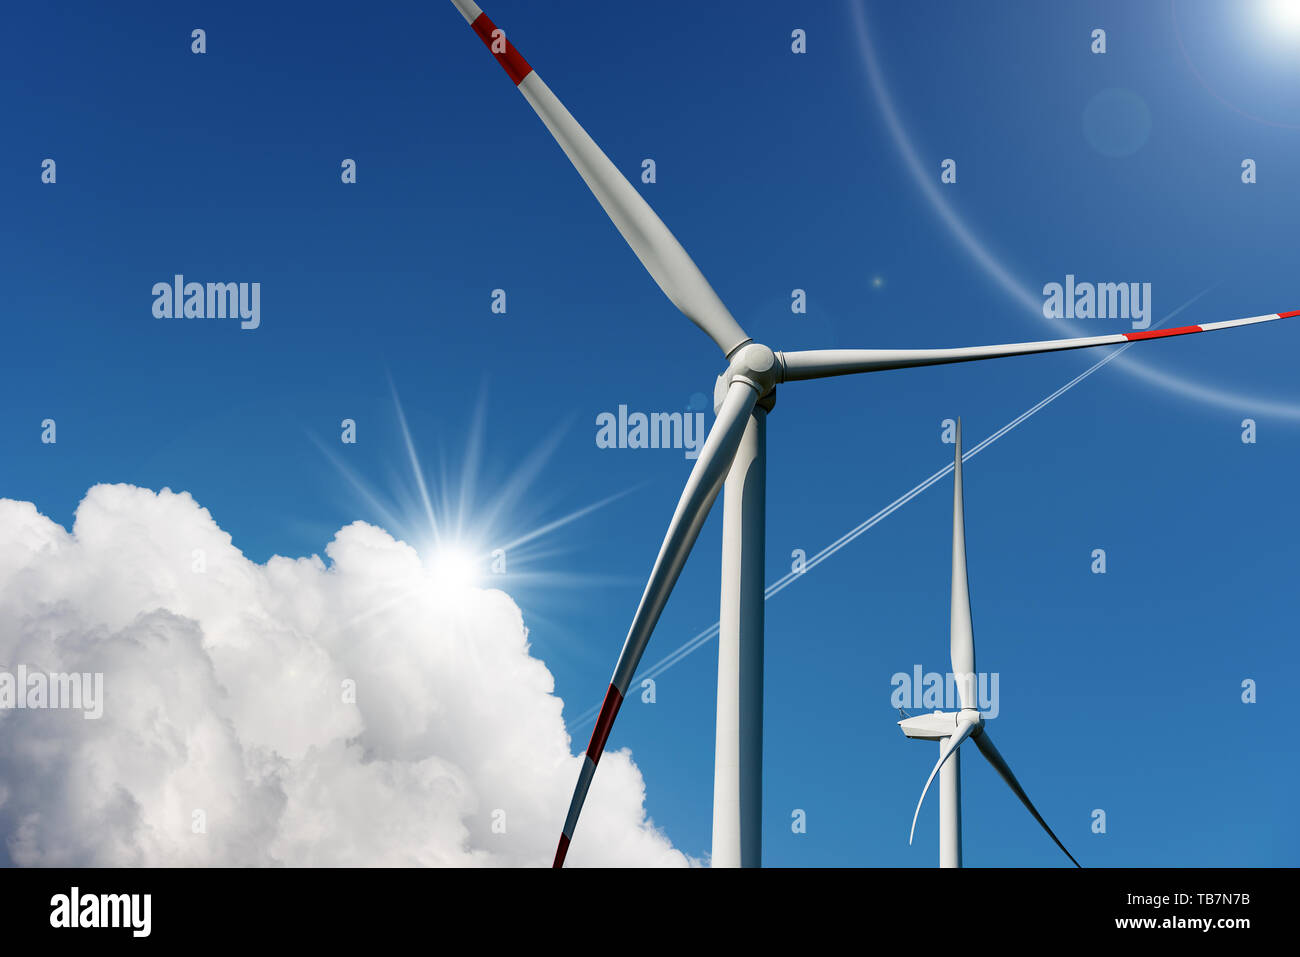 Two wind turbines on a blue sky with clouds and sun rays - Renewable energy concept Stock Photo